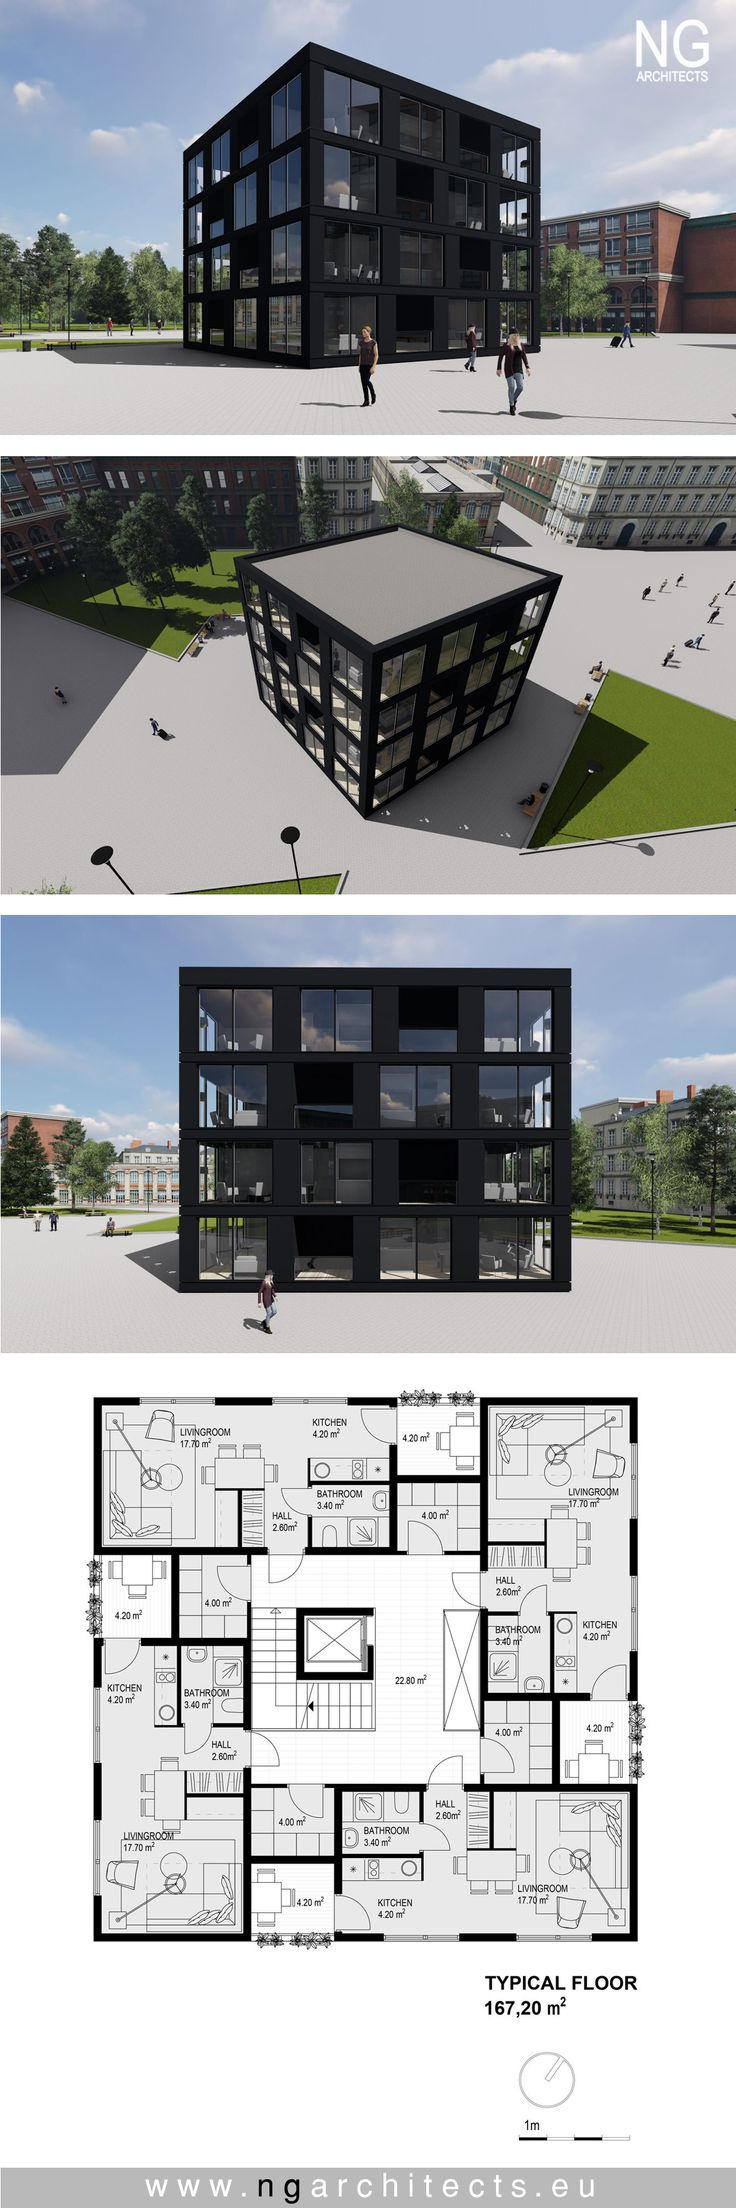 multiapartment building designed by NG architects www.ngarchitects.eu – NG architects     we design modern villas around the world